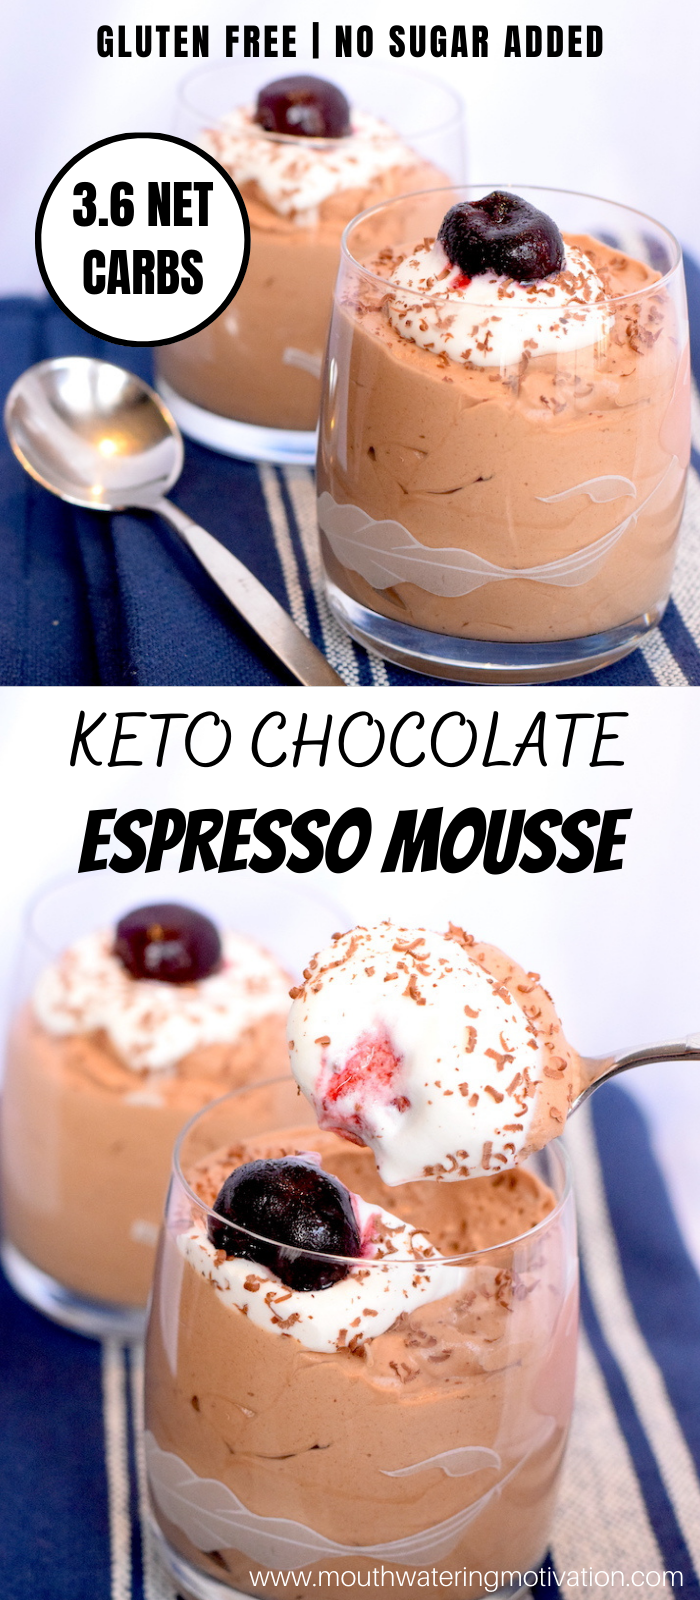 Keto Chocolate Espresso Mousse